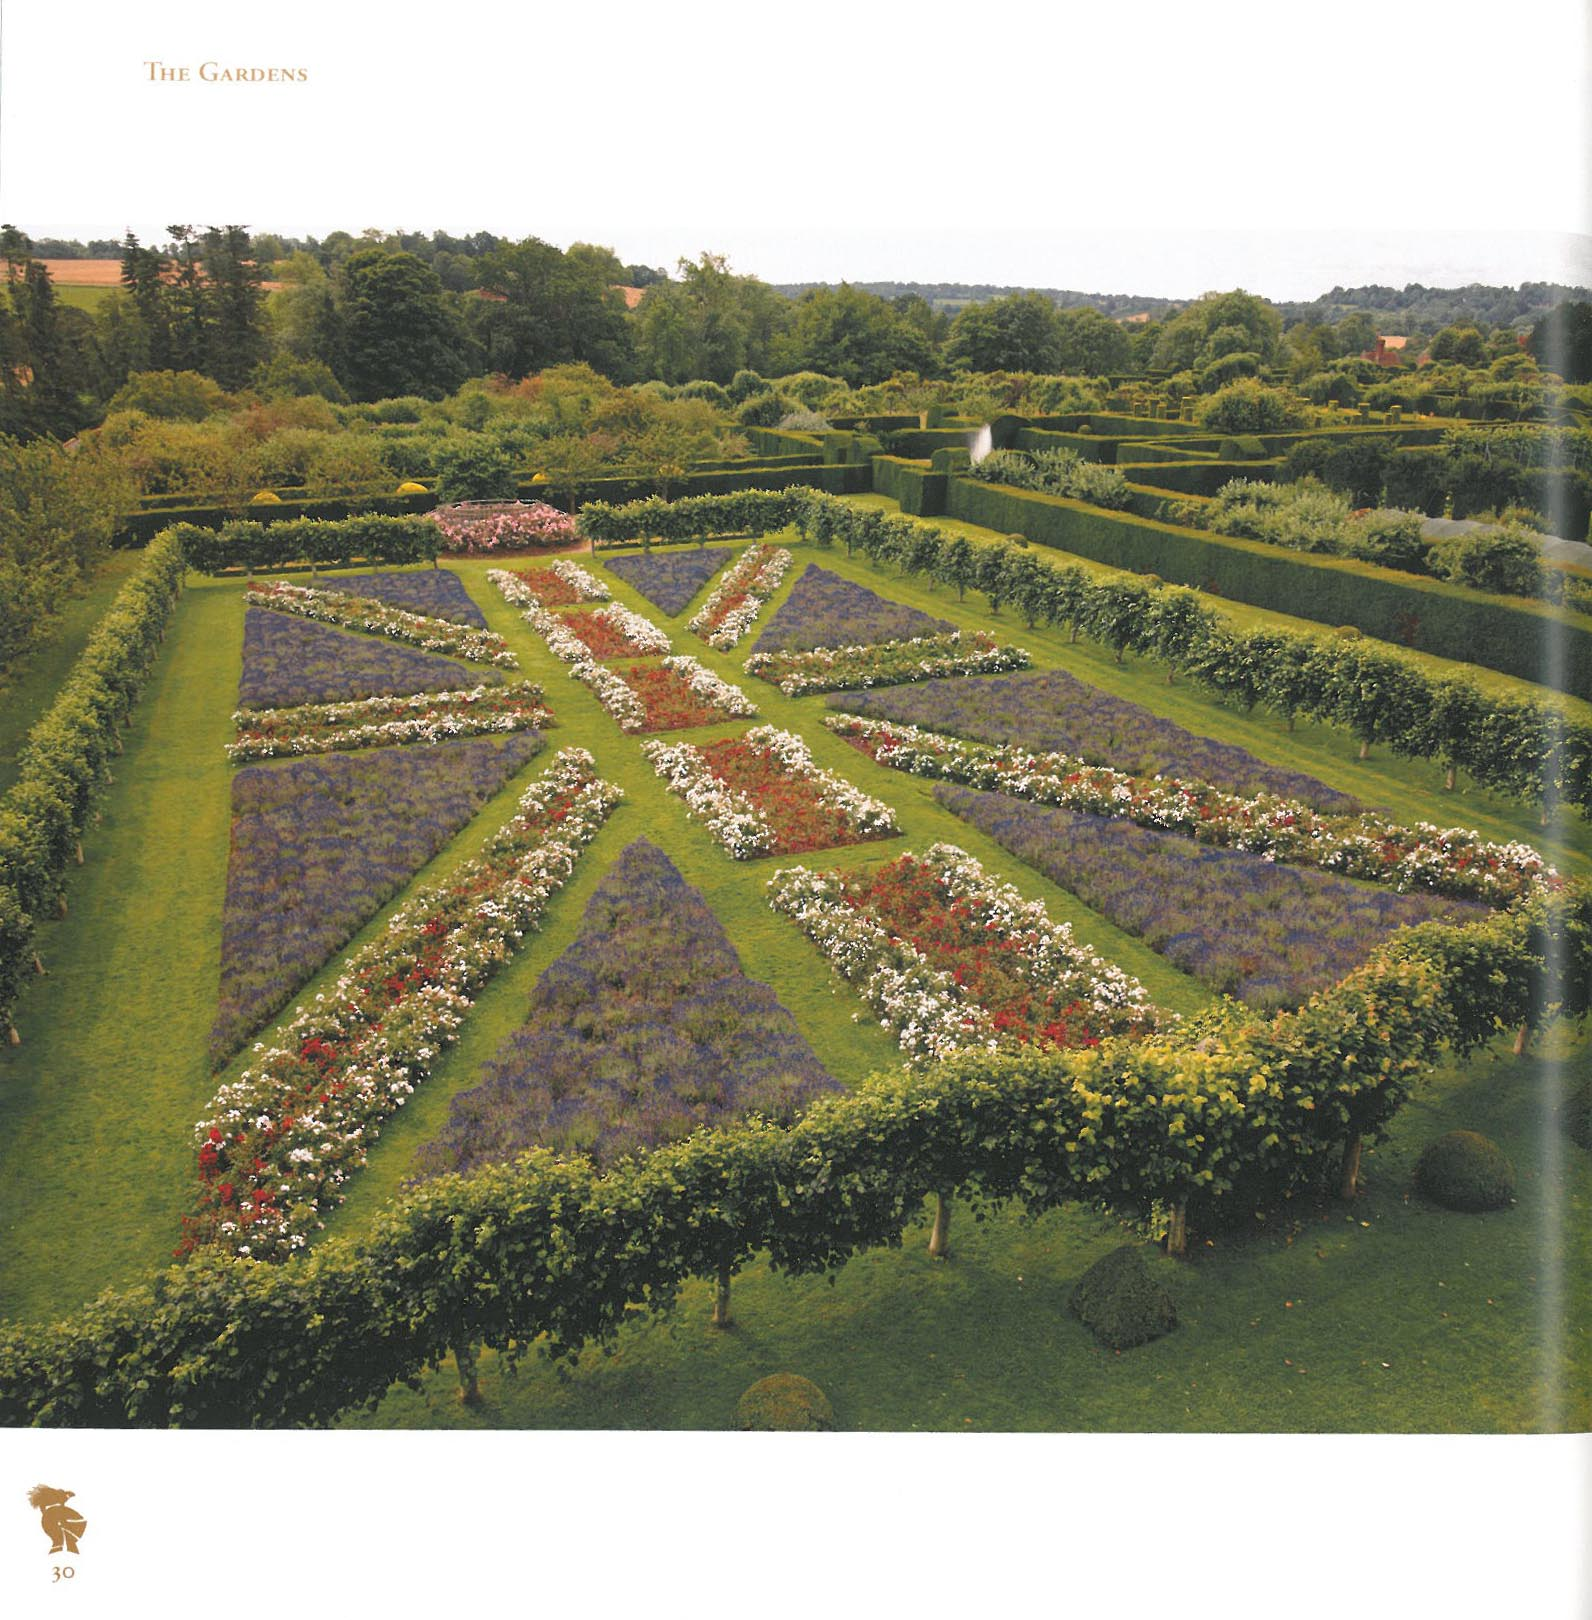 A Sparrow's-eye view of the Union Flag Garden. Image courtesy of Penshurst Place.